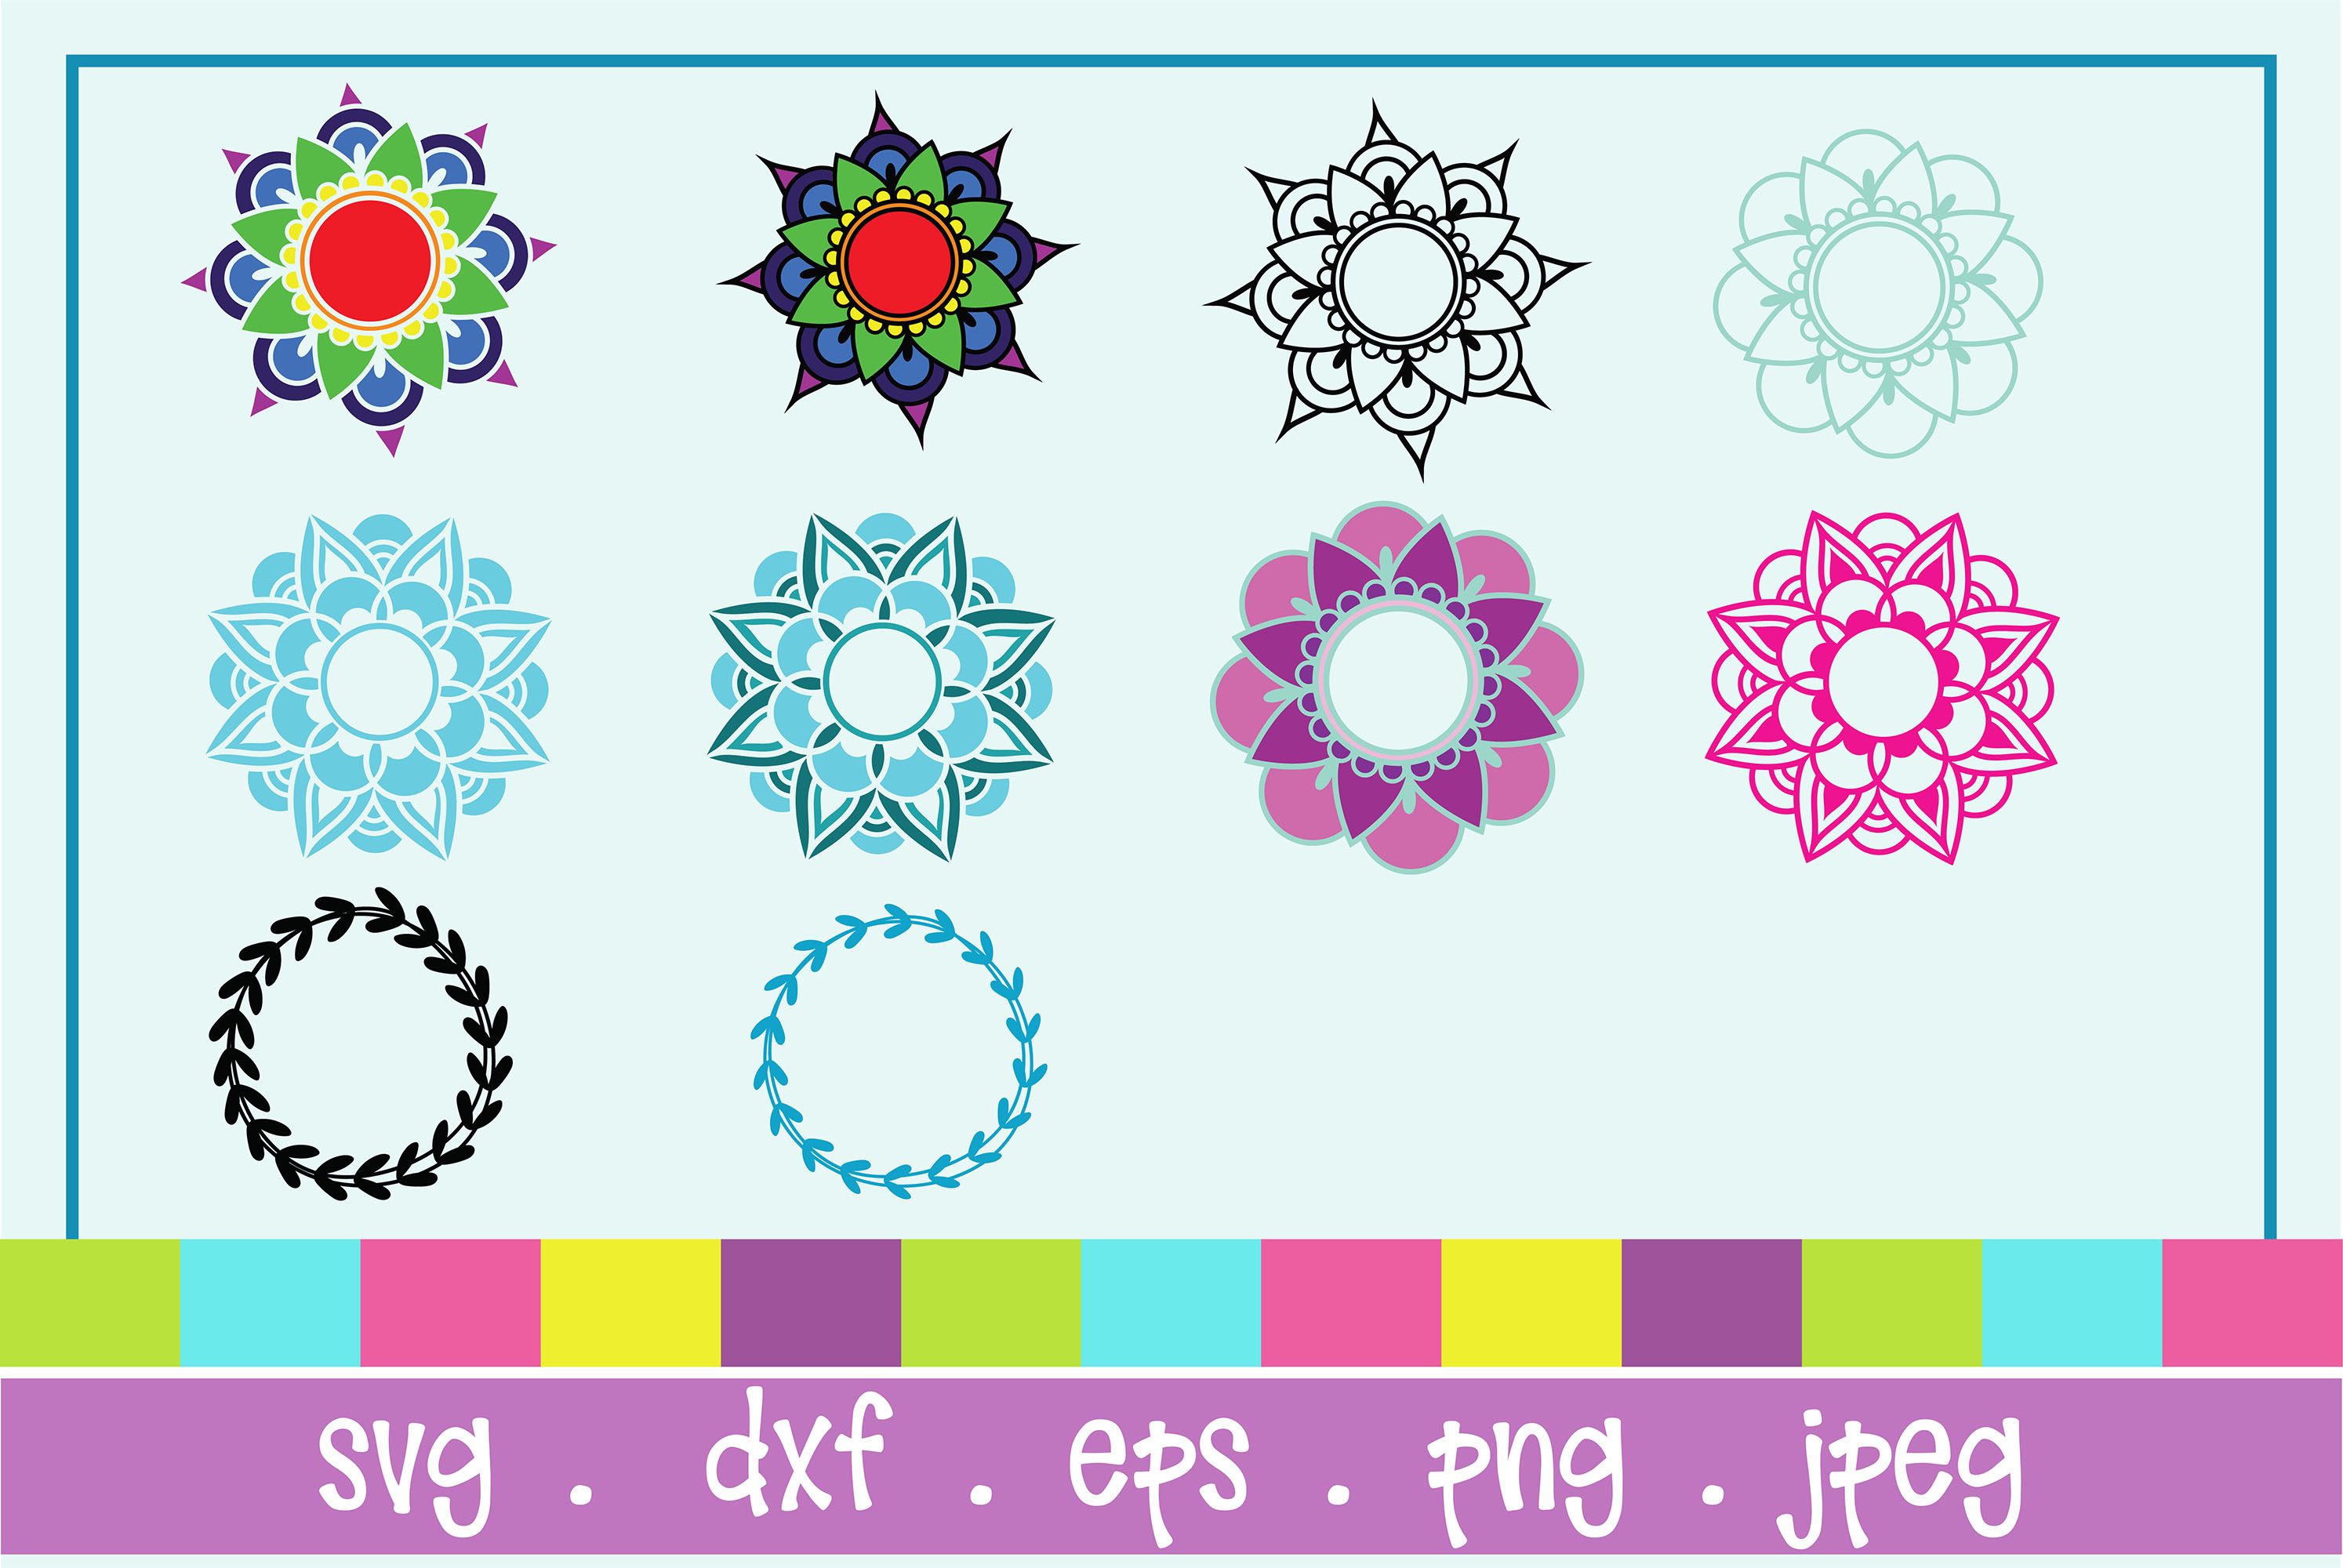 The Huge SVG Bundle Vol 2, 500 Cutting files, SVG, DXF,PNG example image 15